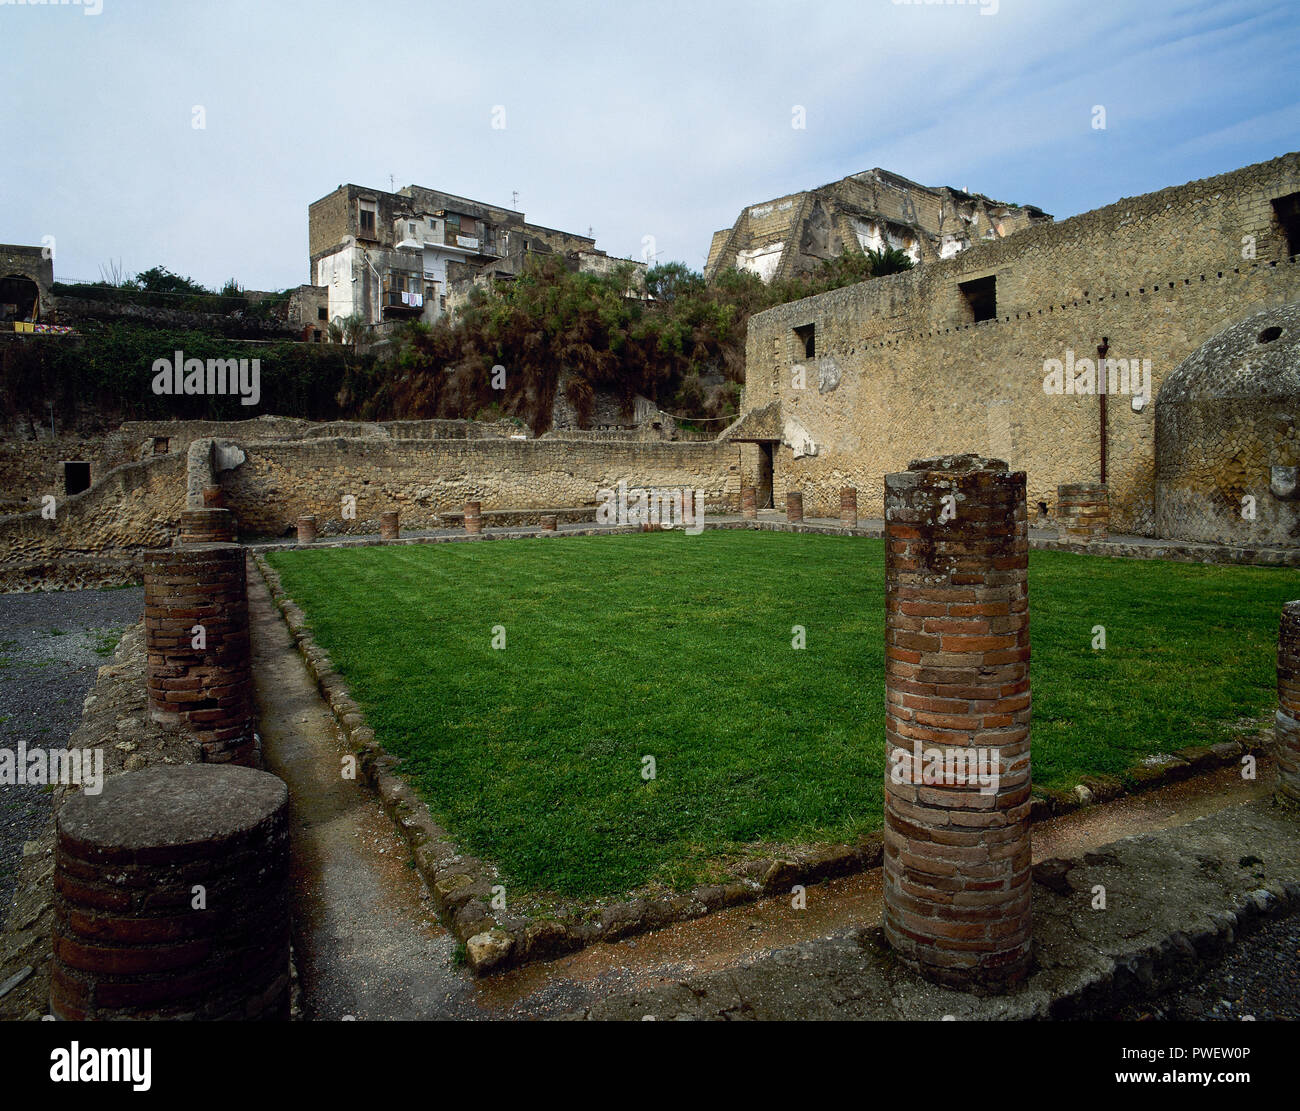 Italy. Herculaneum. Ancient Roman city destroyed by the eruption of the Vesuvius at 79 AD. Urban Baths. 1st century BC. Outside view. La Campania. - Stock Image